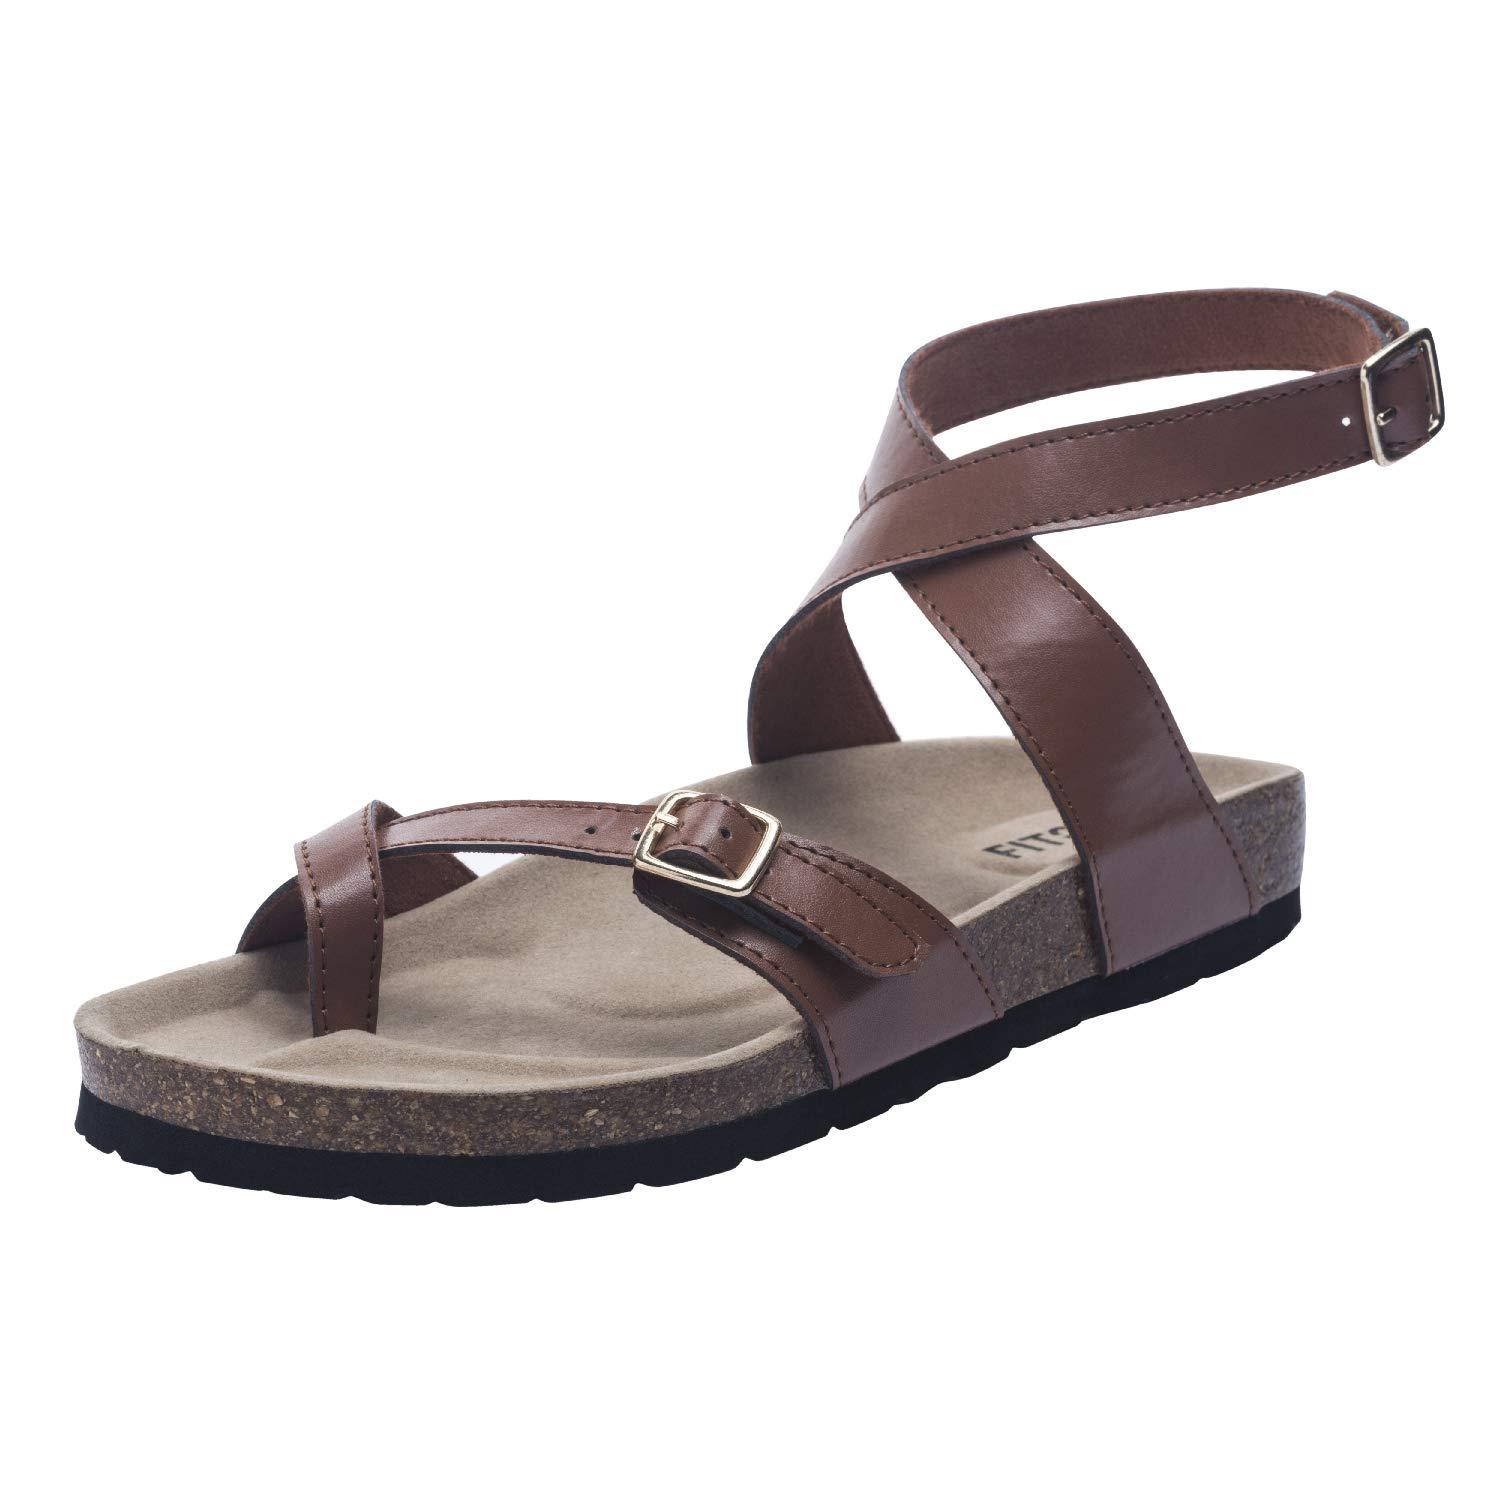 370144b141b Amazon.com | FITORY Womens Flat Sandals Toe Loop Cork Thong with Ankle  Strap Comfort Outdoor Shoes Size 6-11 | Sandals